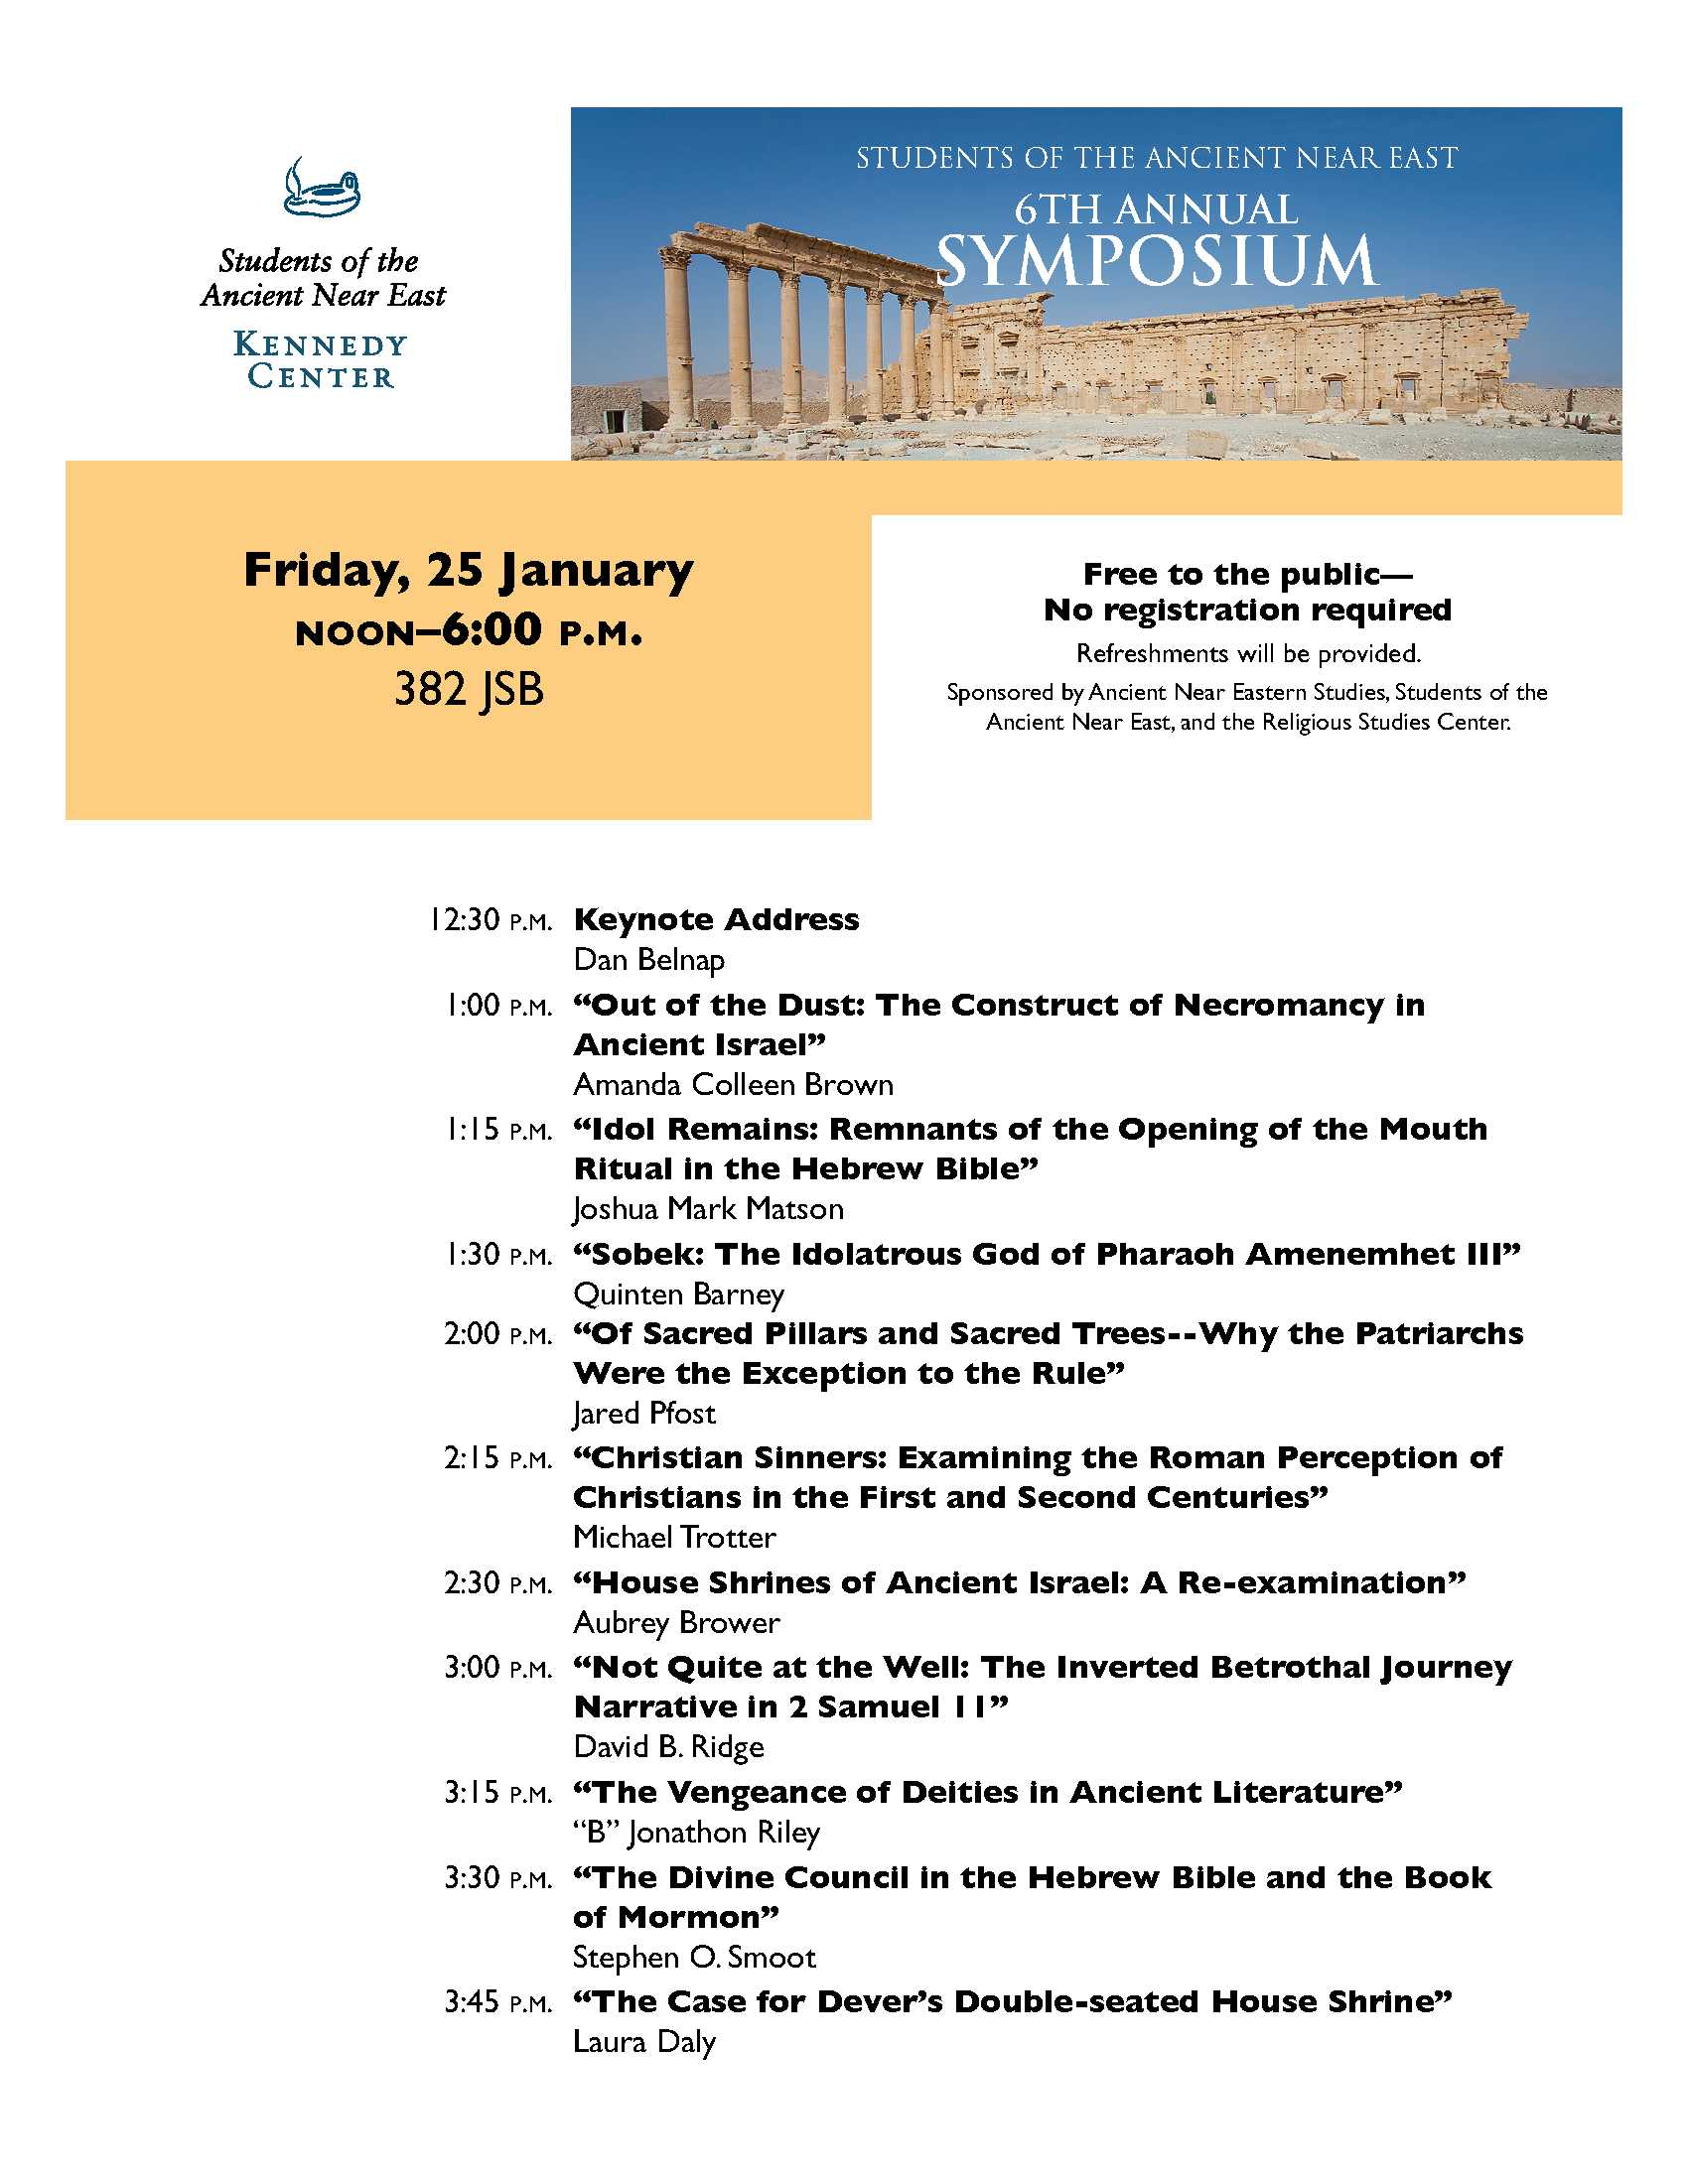 SANEsymposium_25jan13-1